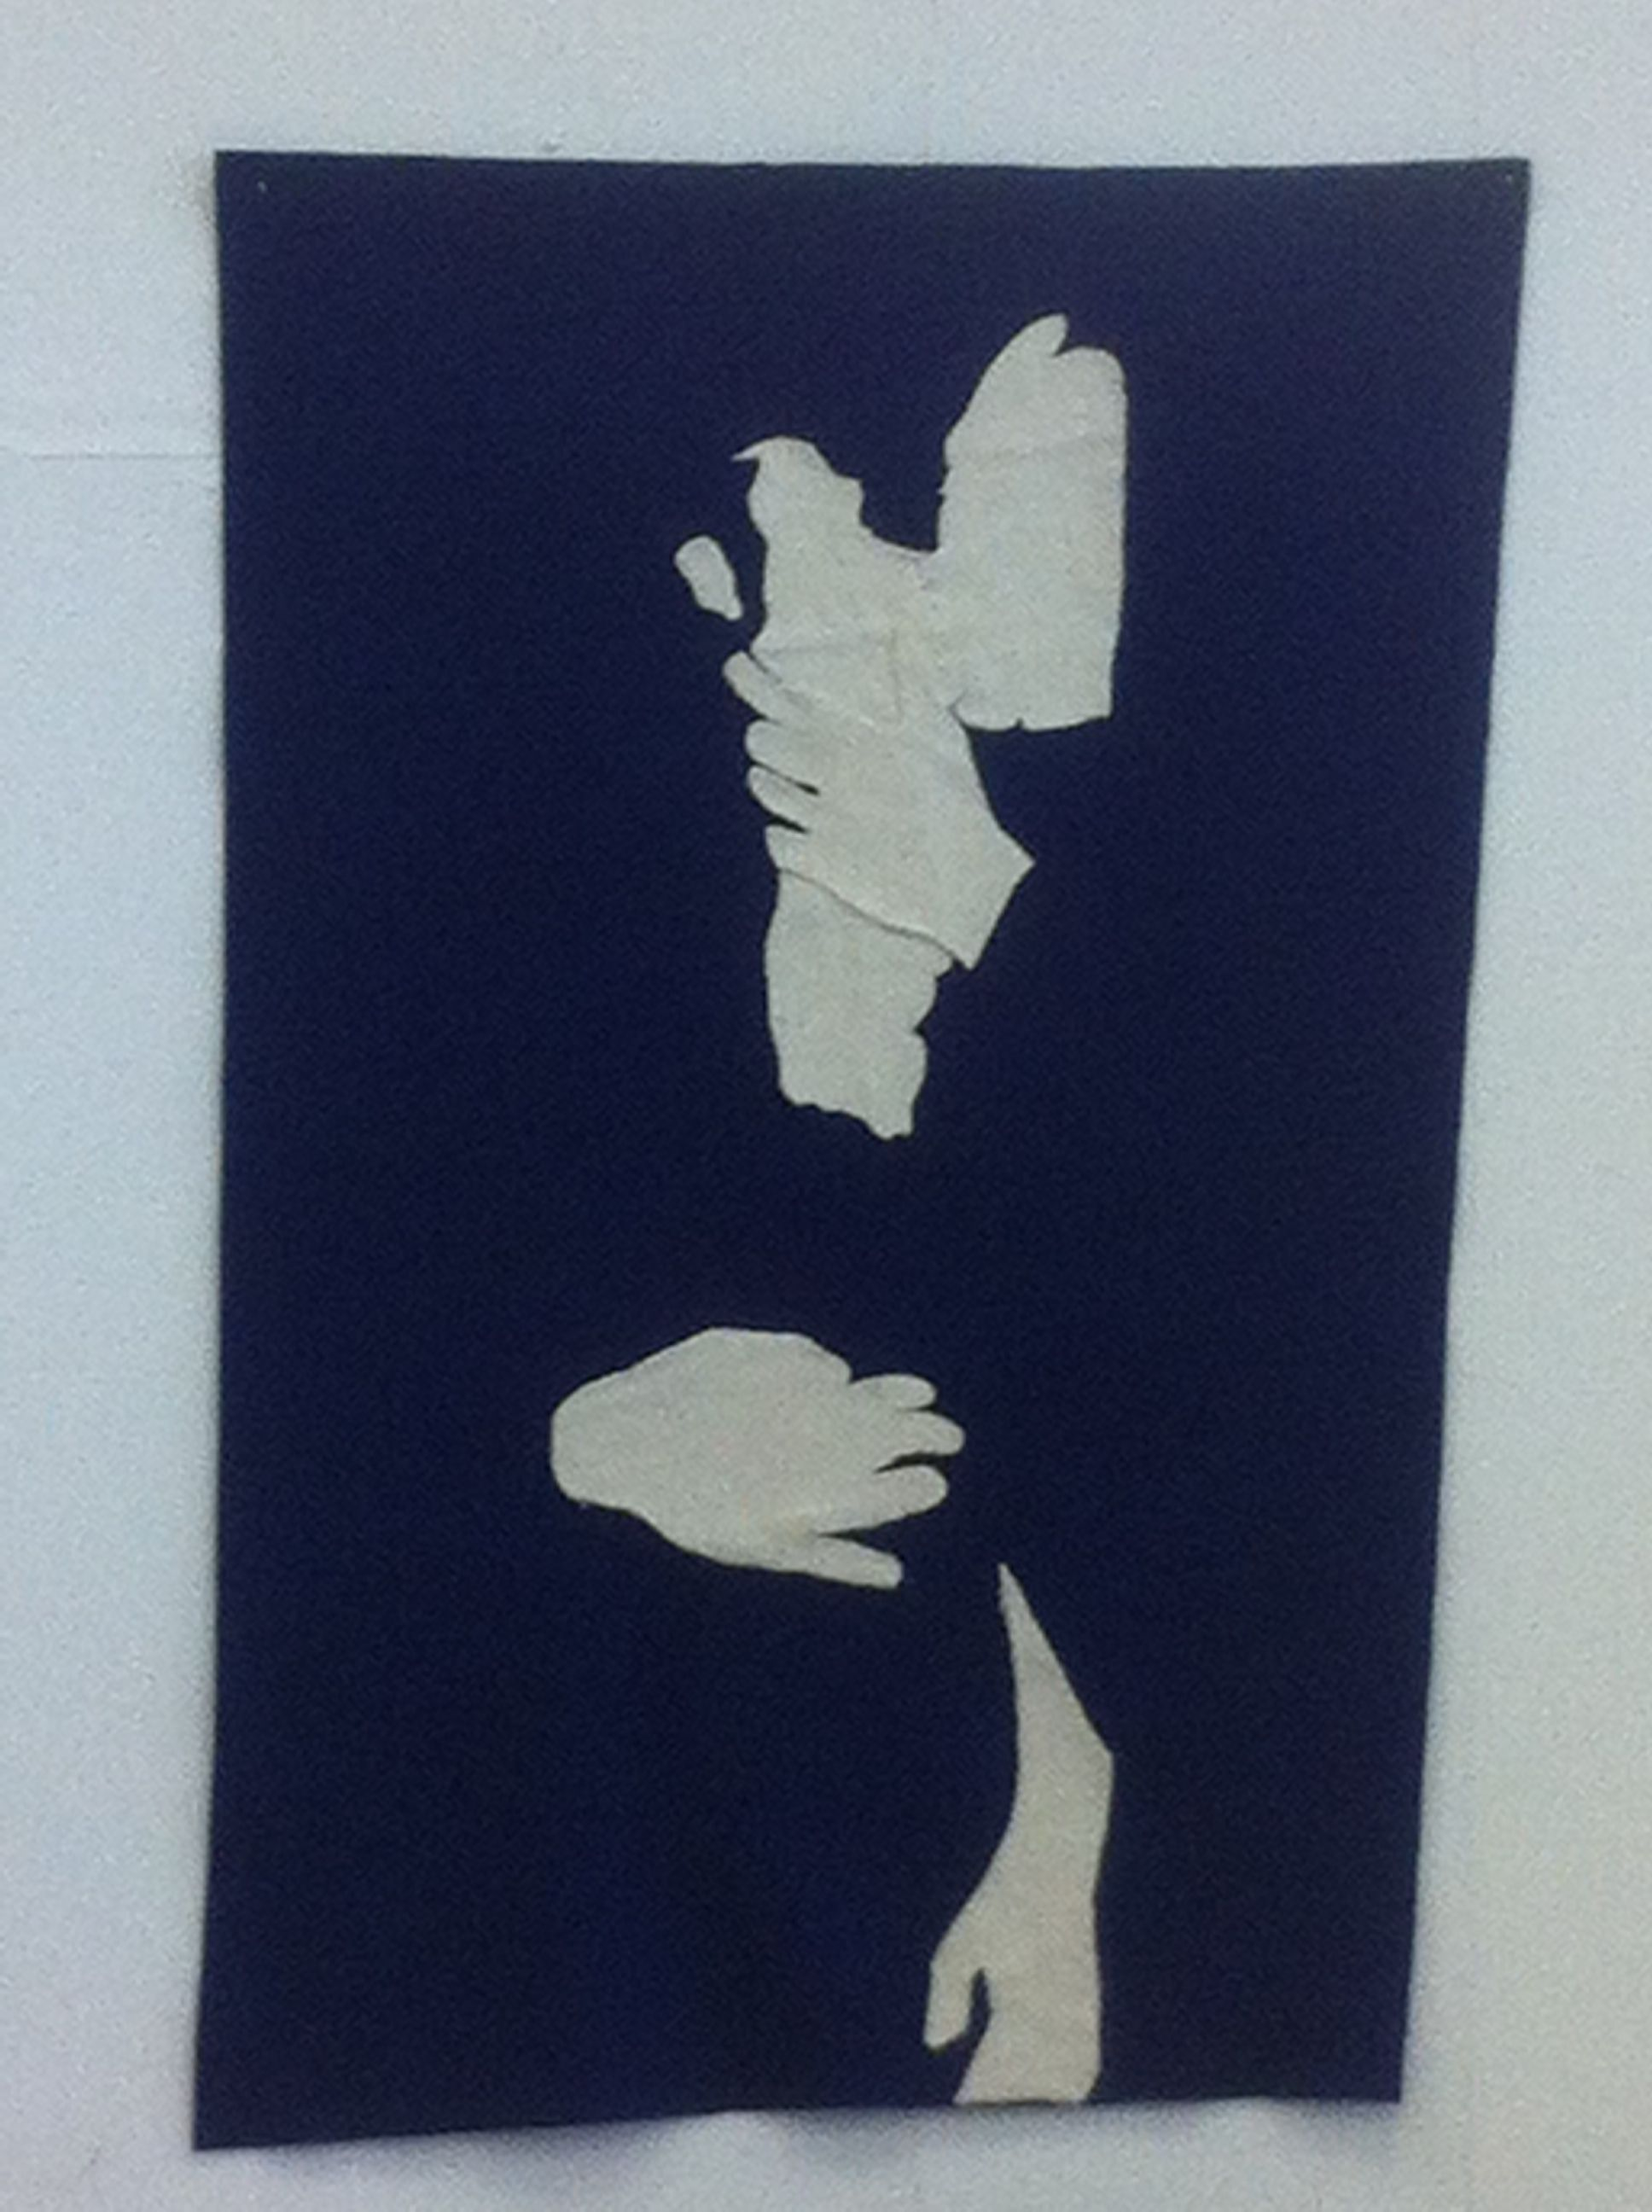 This is a felt 'painting' of the kiss between Mia and Dracula from the film. Second year University.